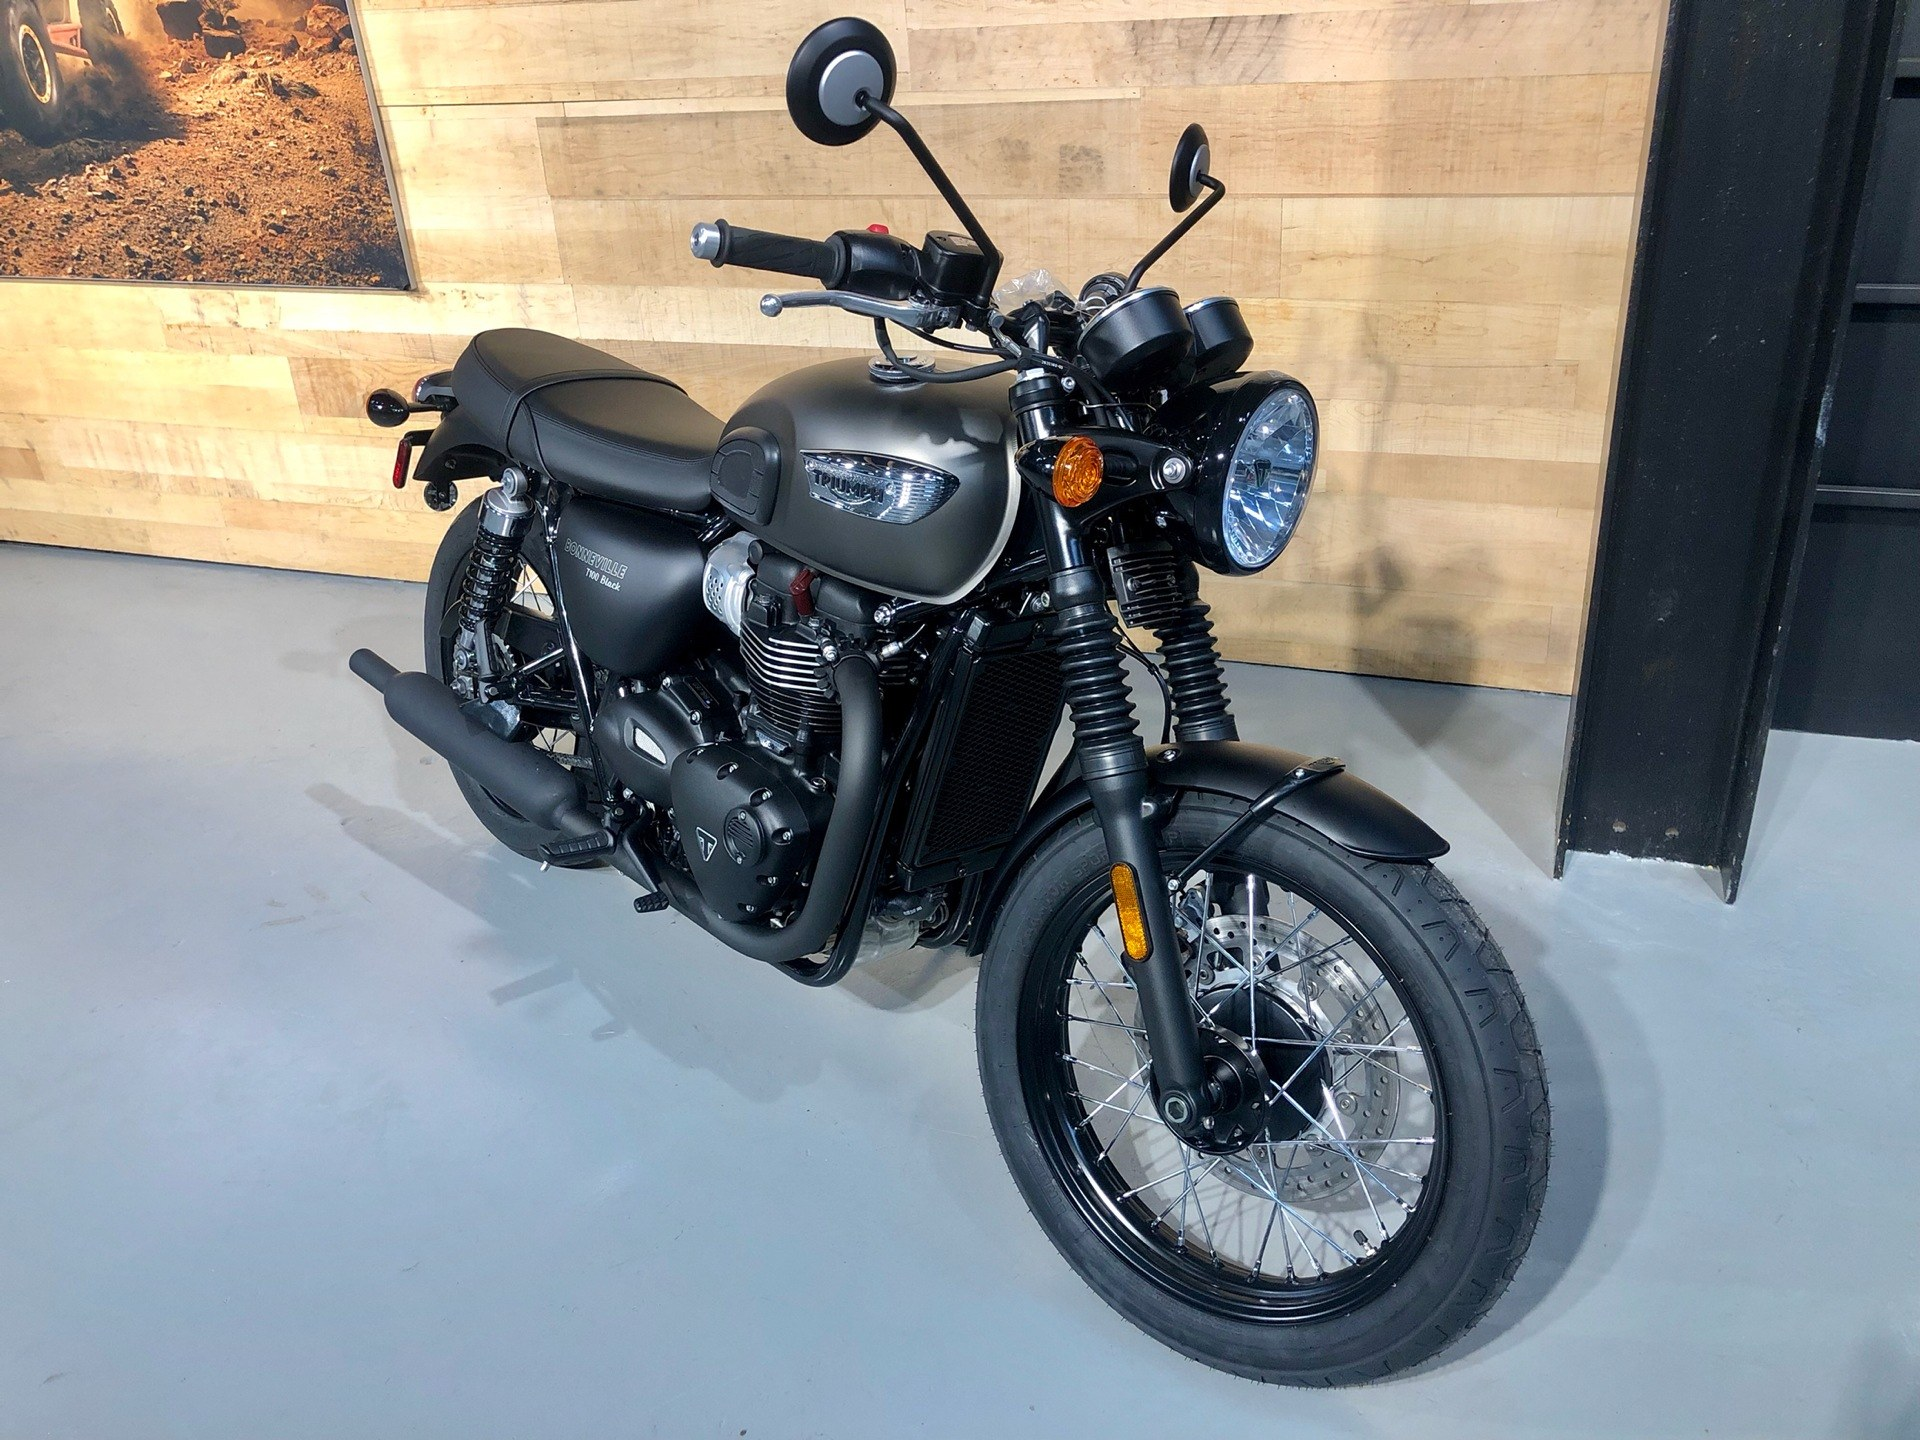 New 2020 Triumph Bonneville T100 Black Motorcycles In Enfield Ct Stock Number N A